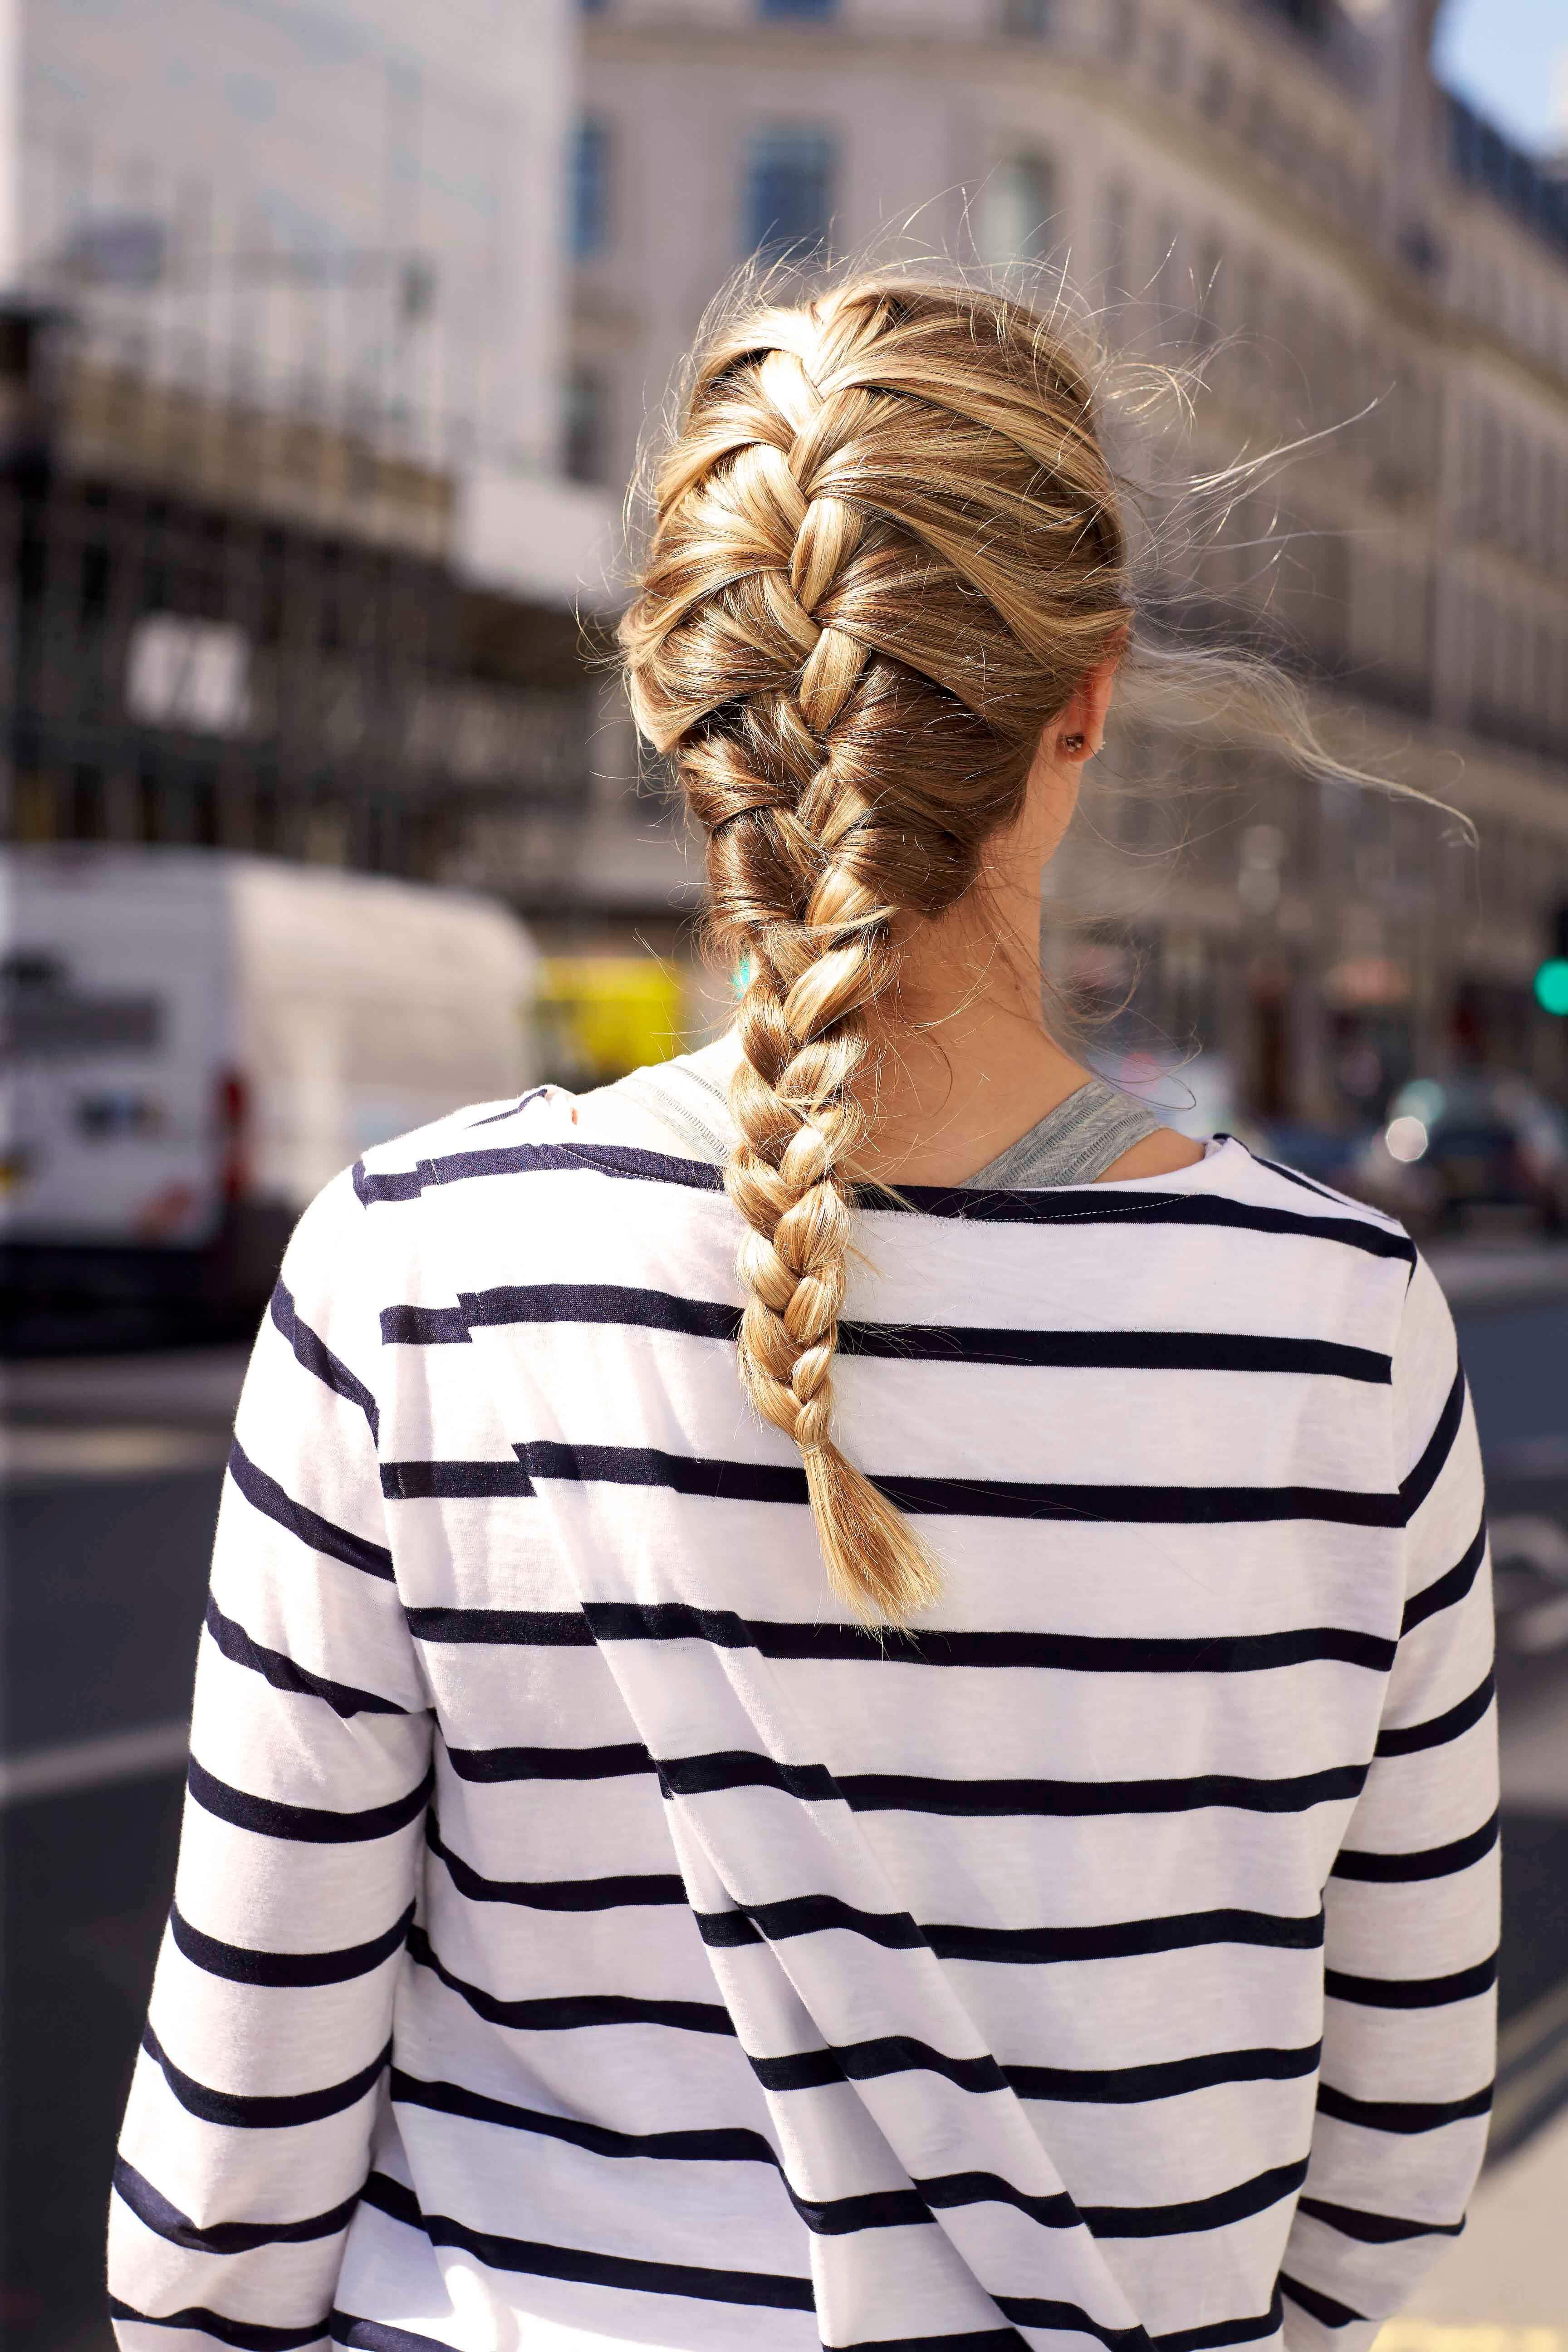 90s hairstyles with a french braid